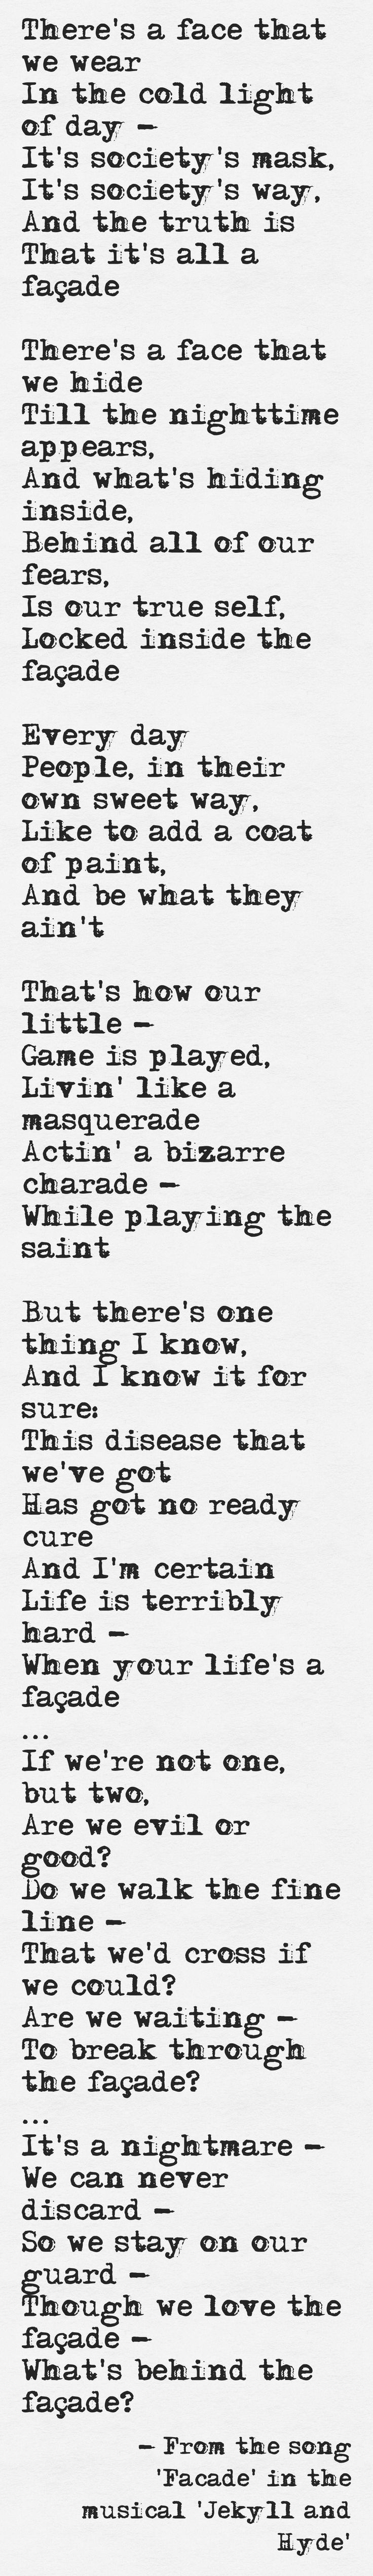 Lyrics from the song 'Facade' in the musical 'Jekyll and Hyde'